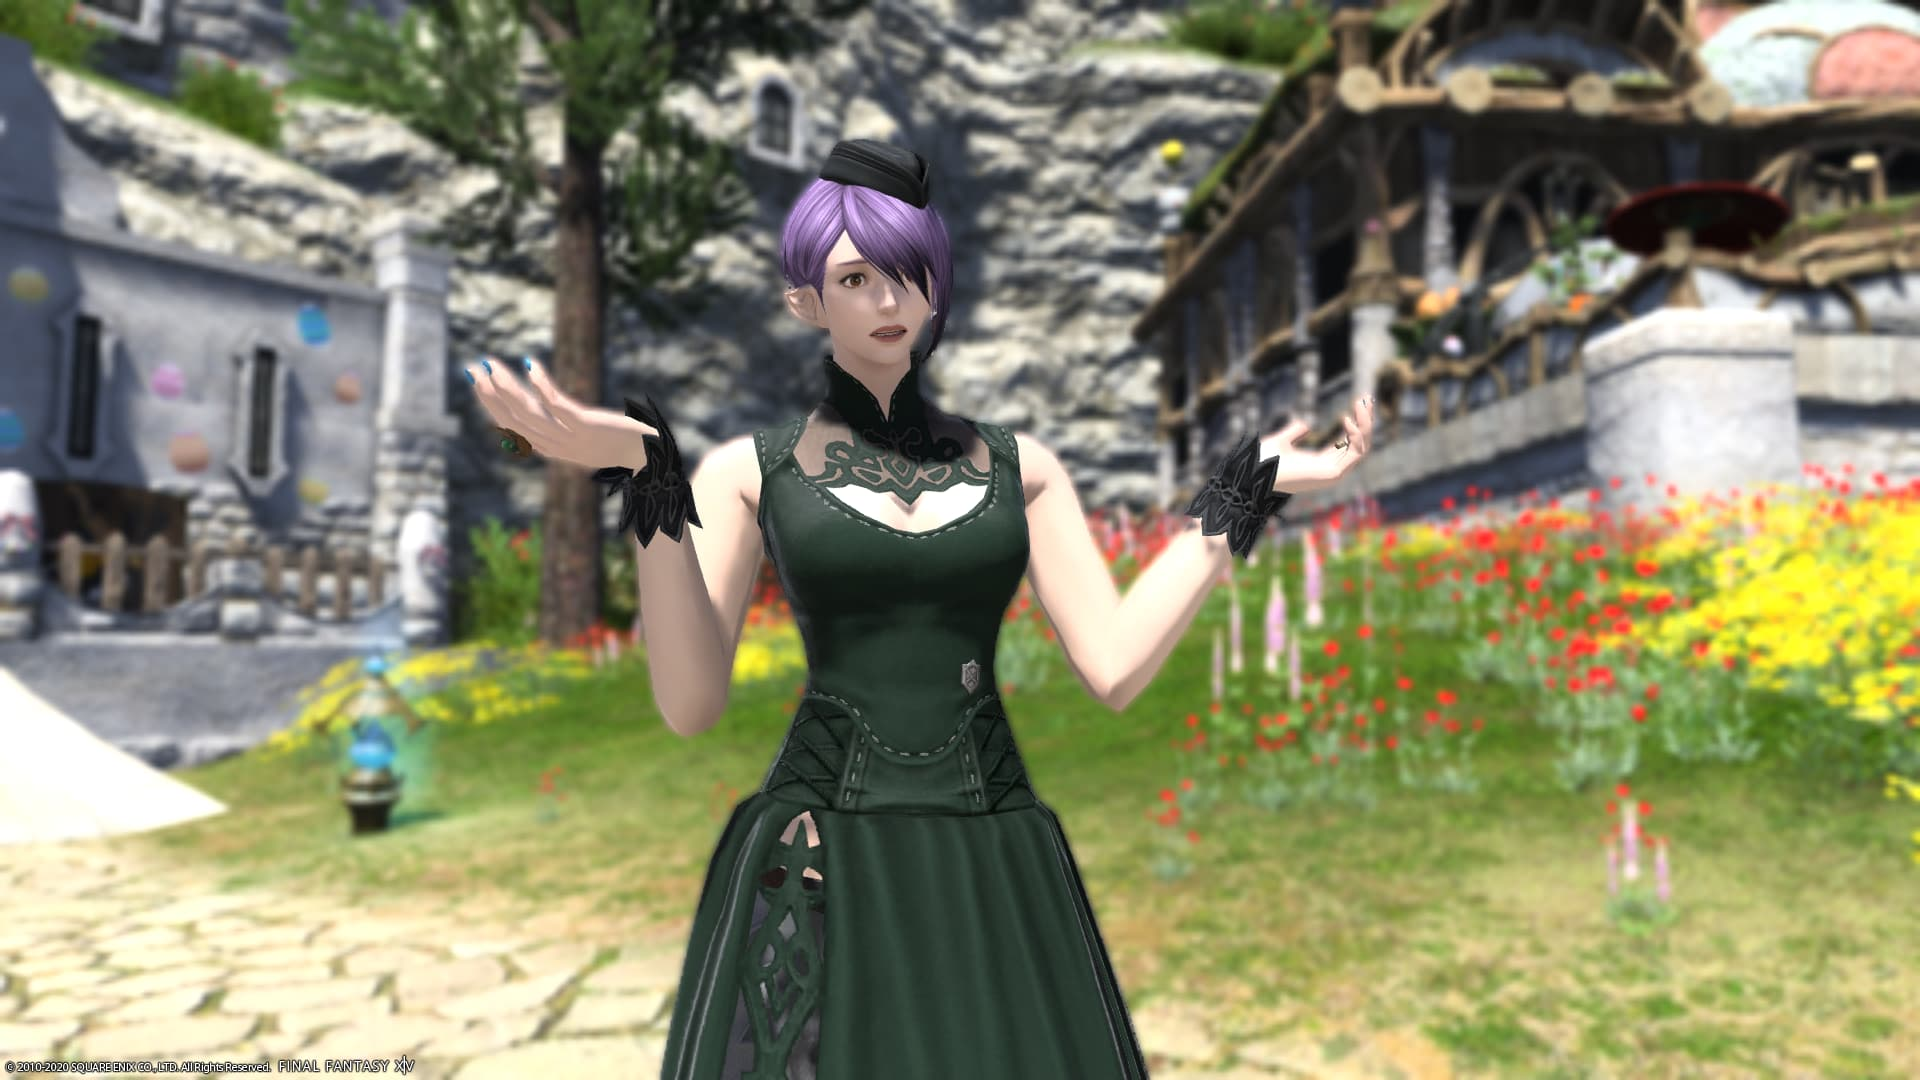 When will Final Fantasy XIV Patch 5.25 release?